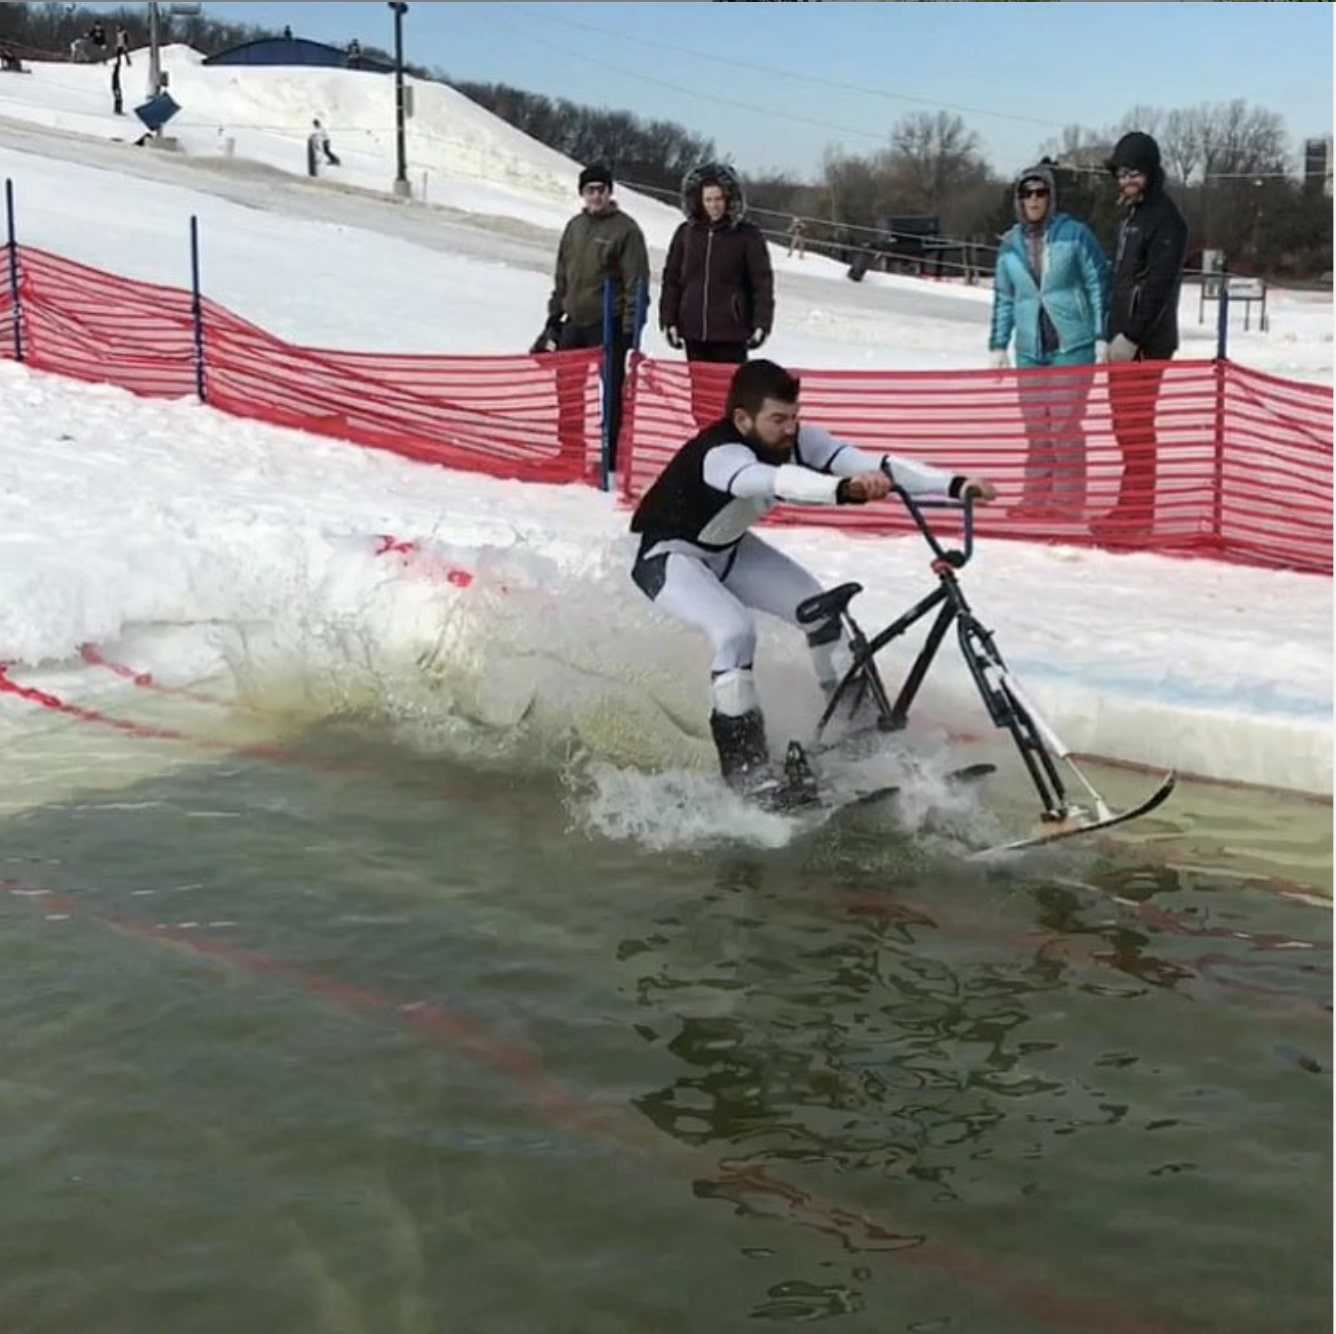 Person rides a bike with skis over a water hole in the snow at ski hill with spectators and a snow fence in background